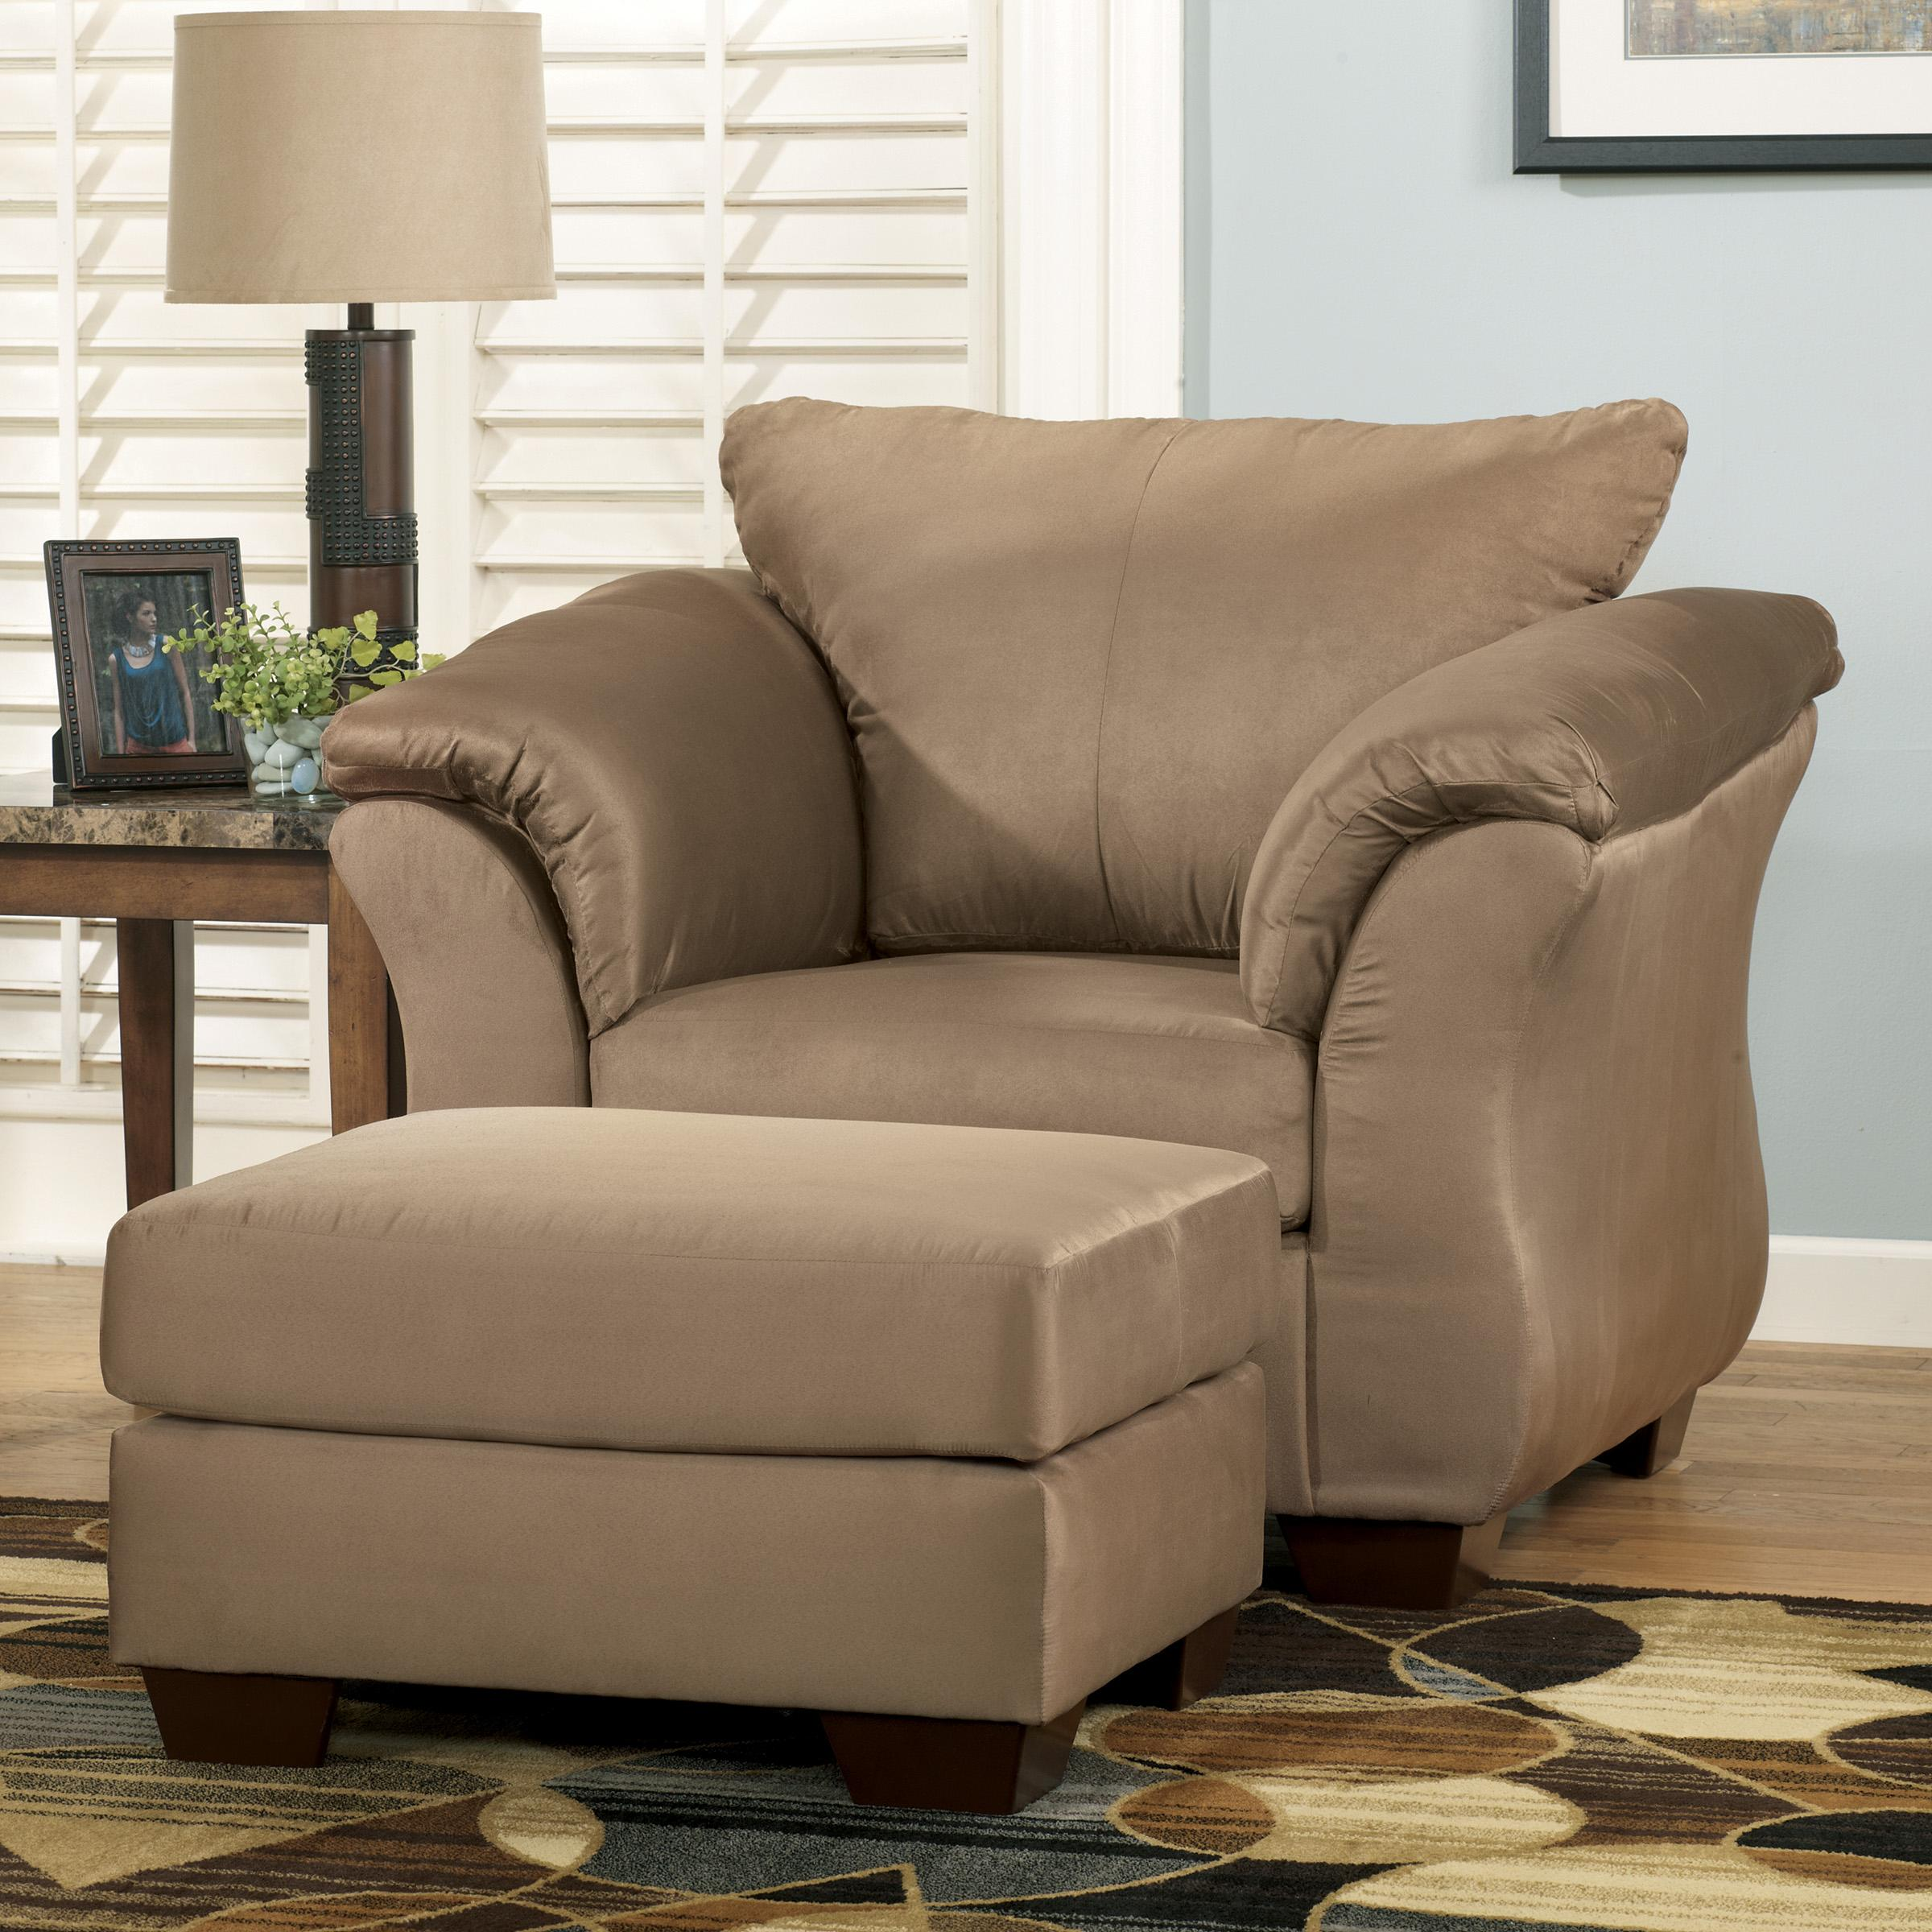 Signature Design By Ashley Darcy Mocha 7500220 Contemporary Upholstered Chair With Sweeping